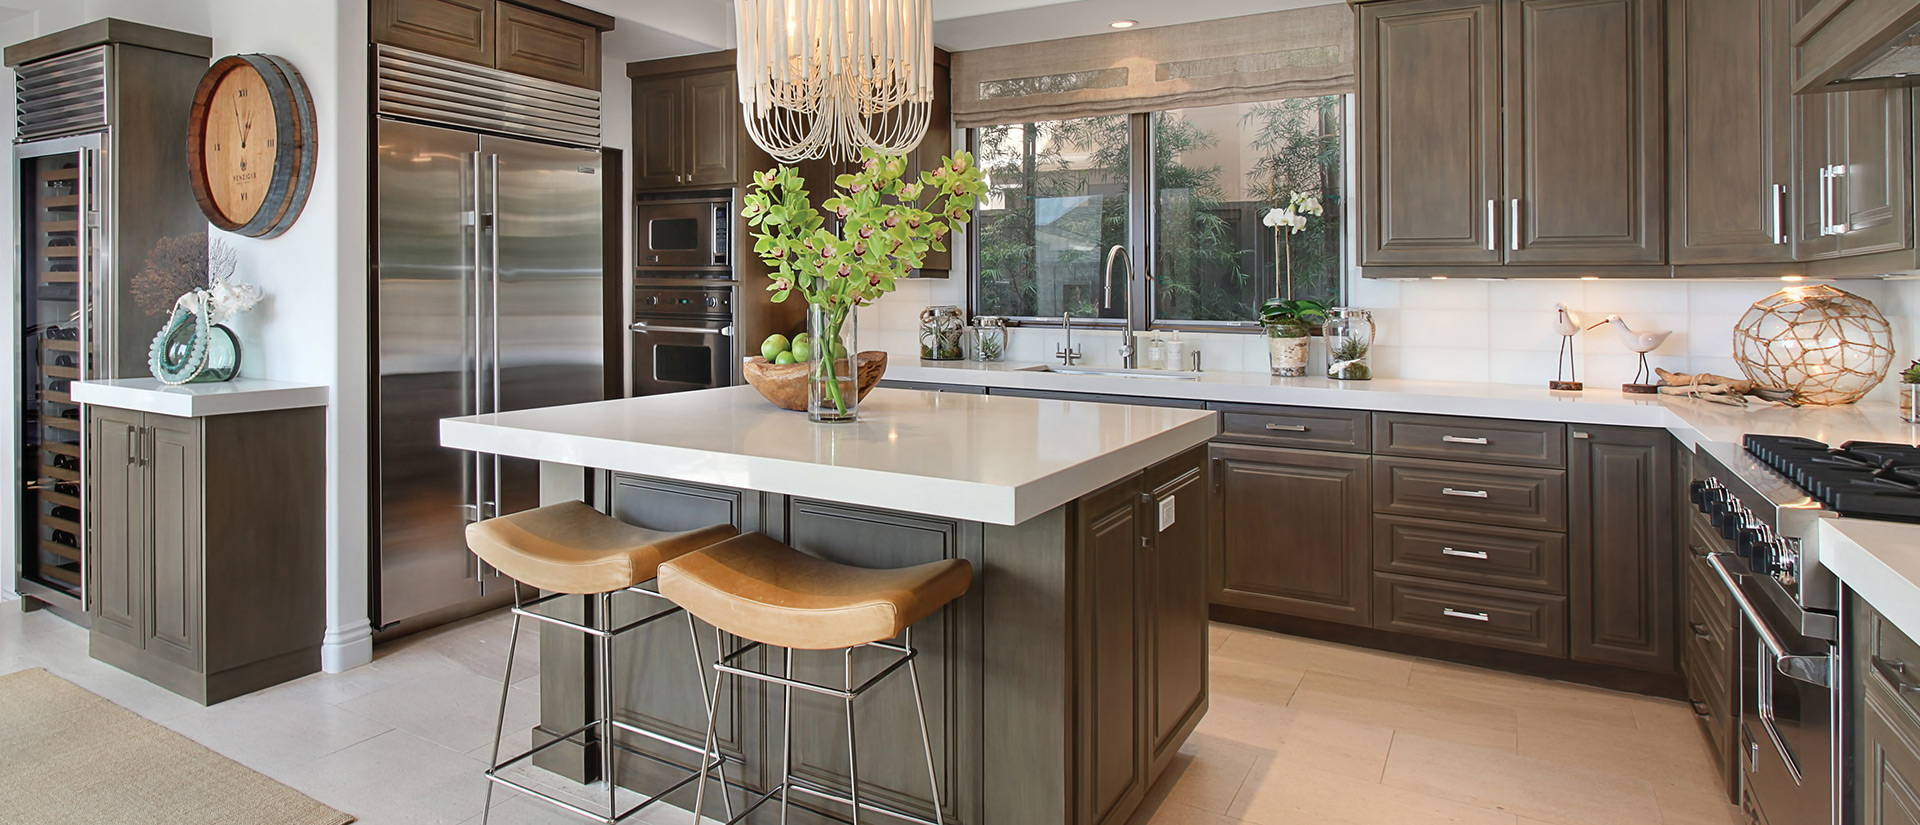 Merveilleux ... Snow White Prefabricated Quartz Countertop By MSI Inc., Countertops,  MSI Inc   The ...